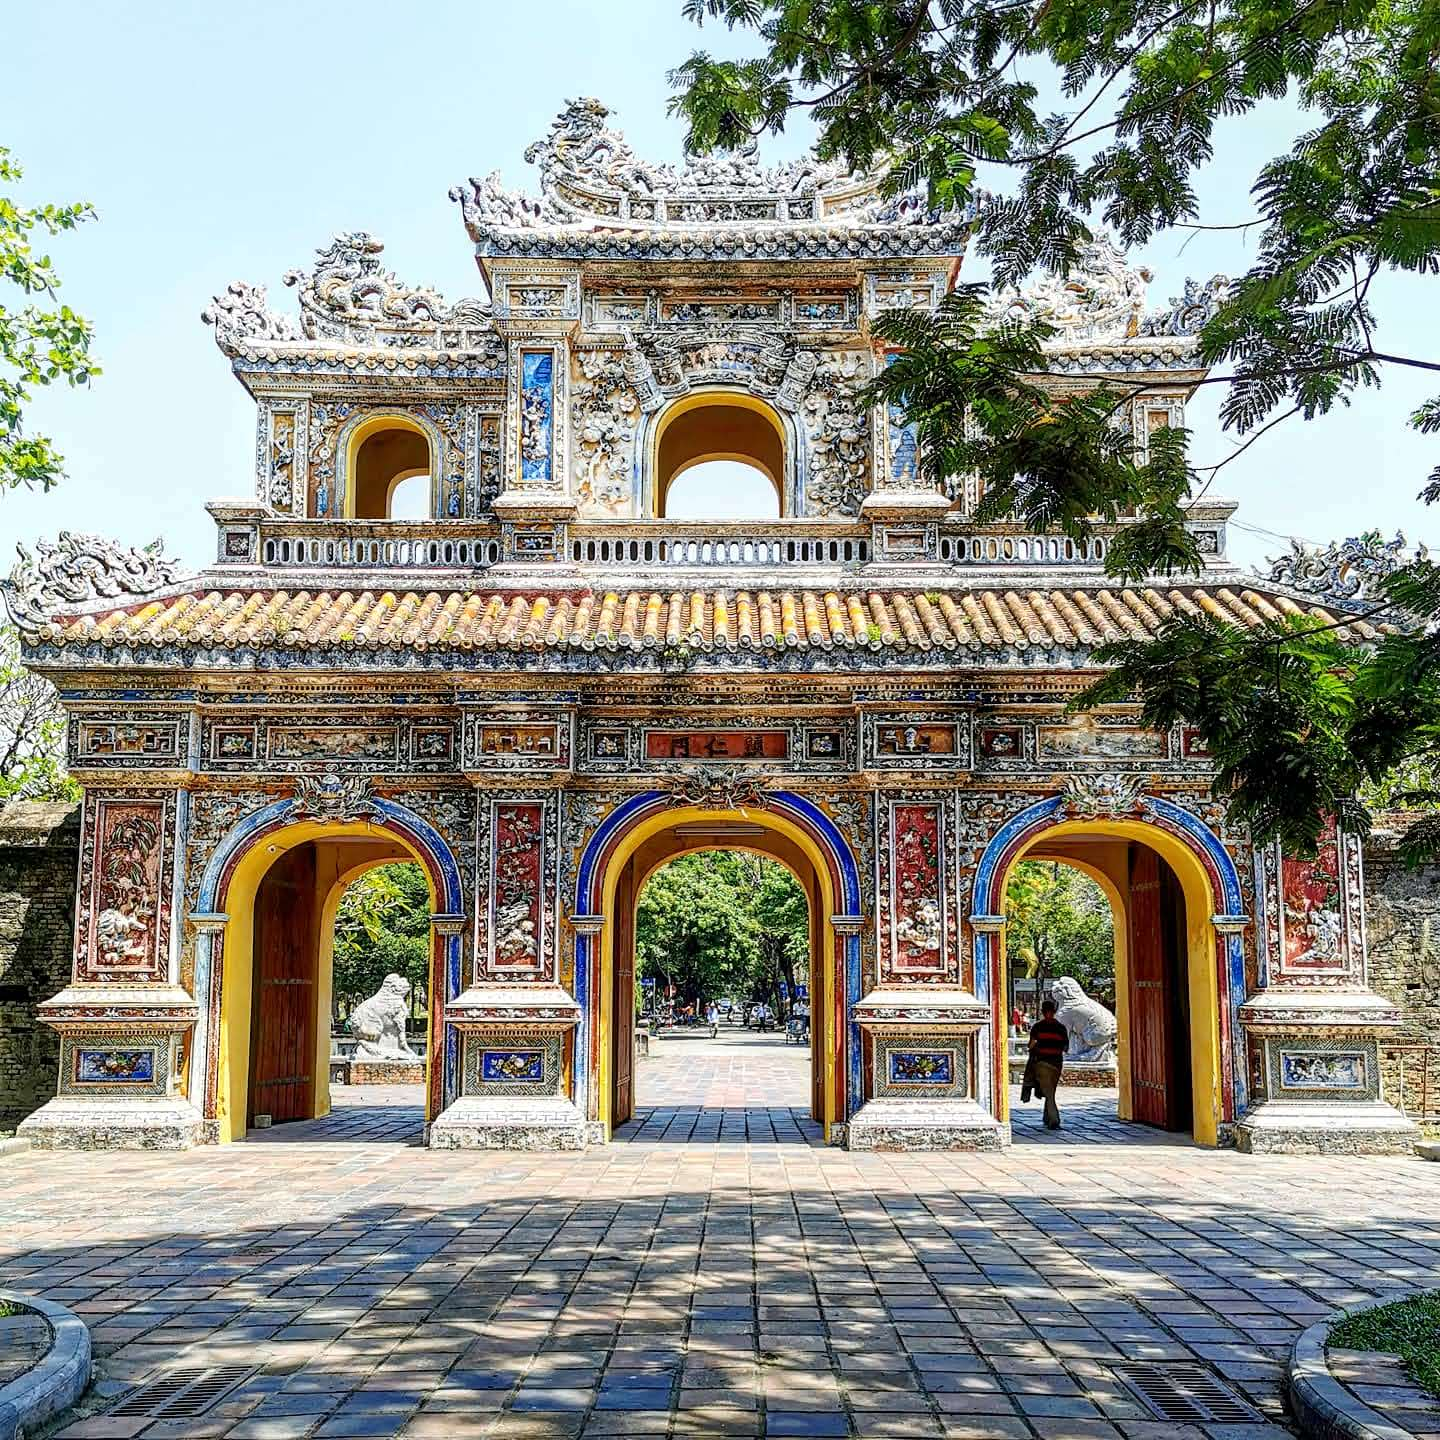 Gate inside the Imperial City, Hue